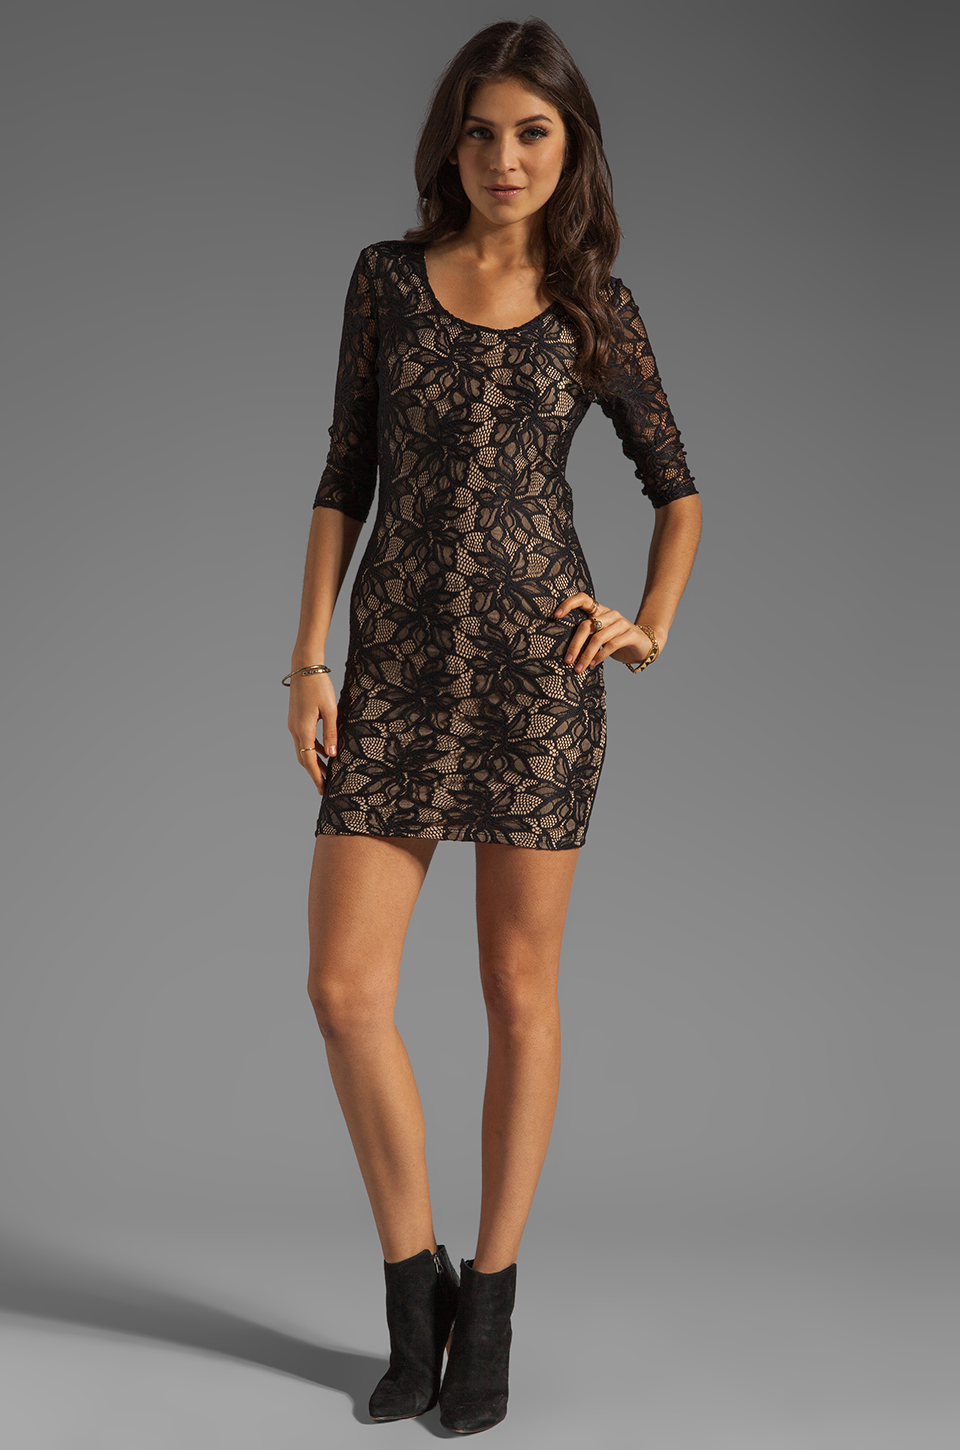 Lovers + Friends Lovers + Friends Sway Dress in Black Lace